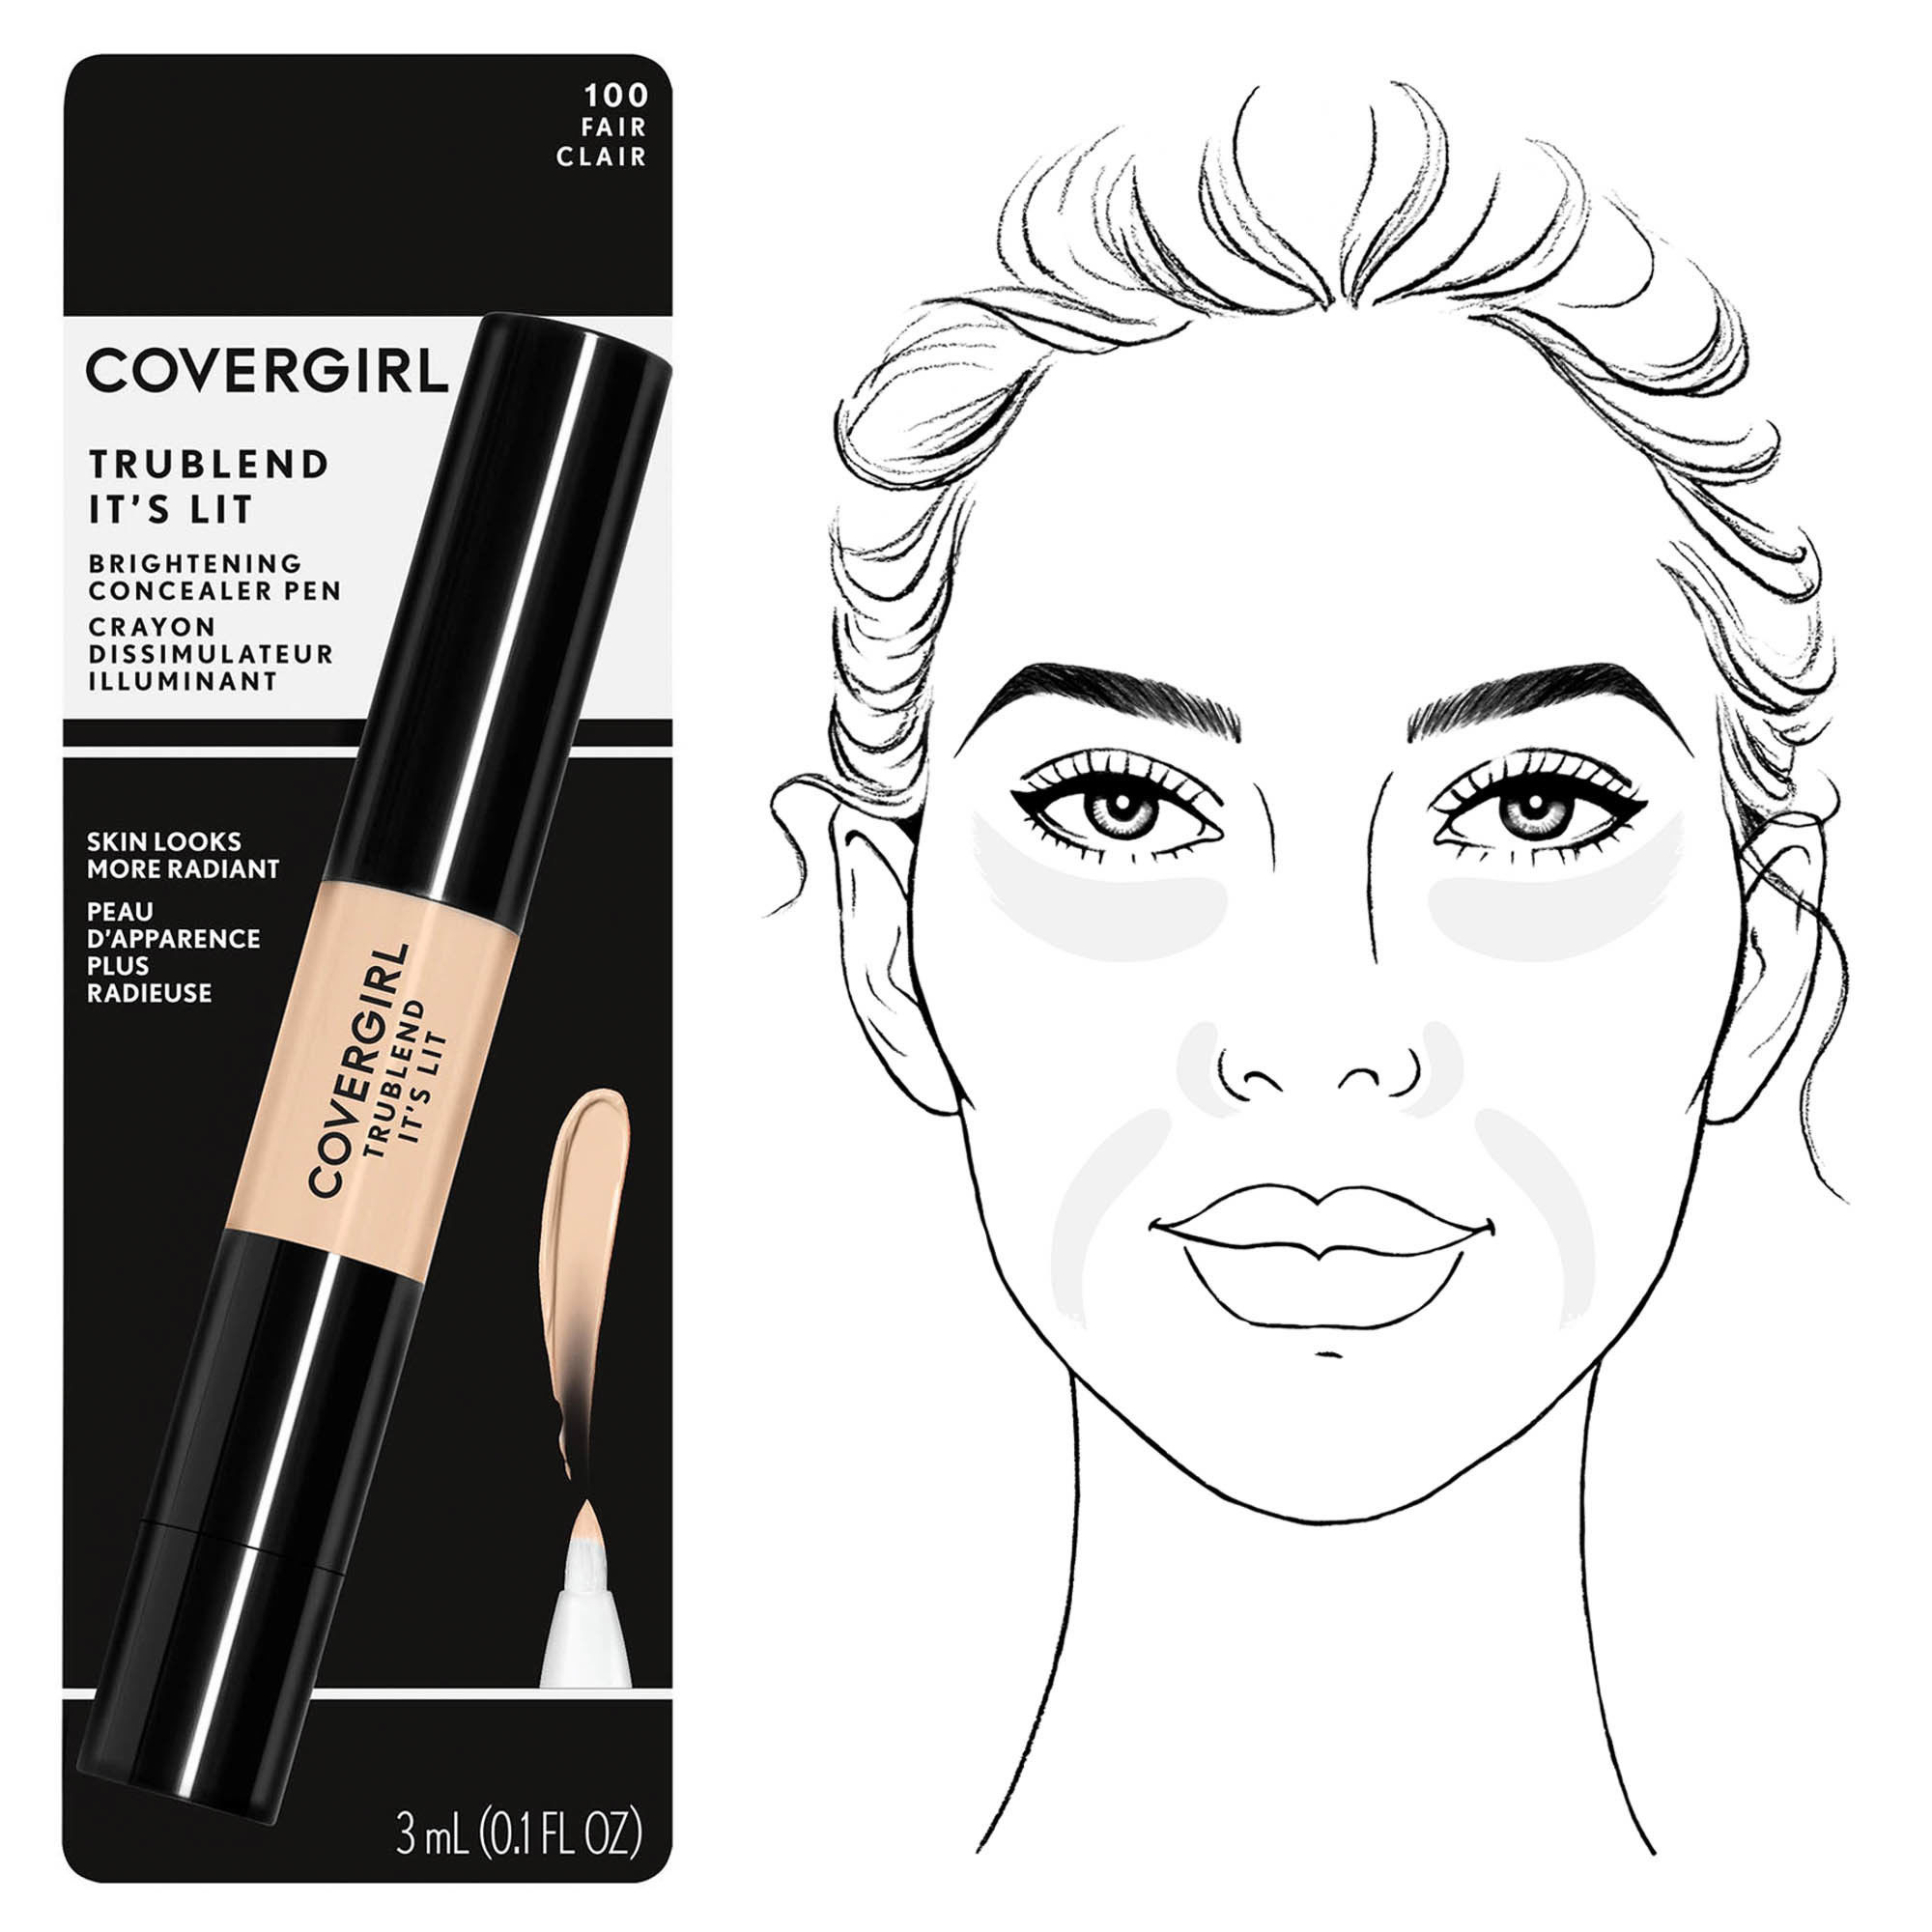 ISABEL SCHARENBERG CREATIVE MANAGEMENT: Lily QIAN for COVERGIRL